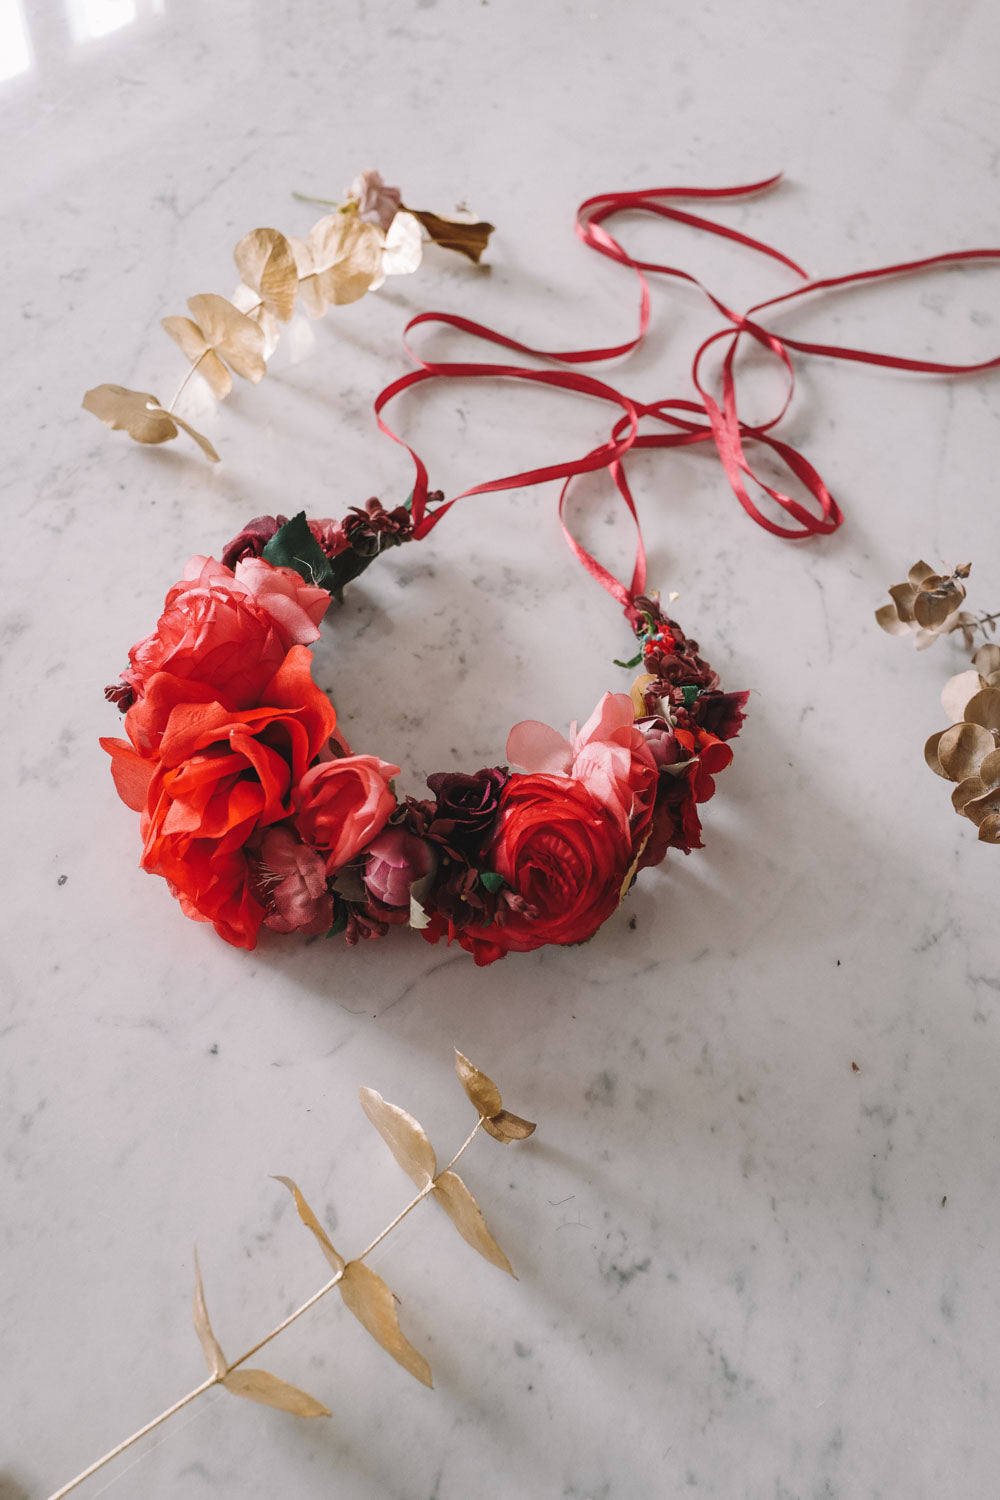 Rasperry Handmade Queen Flowercrown